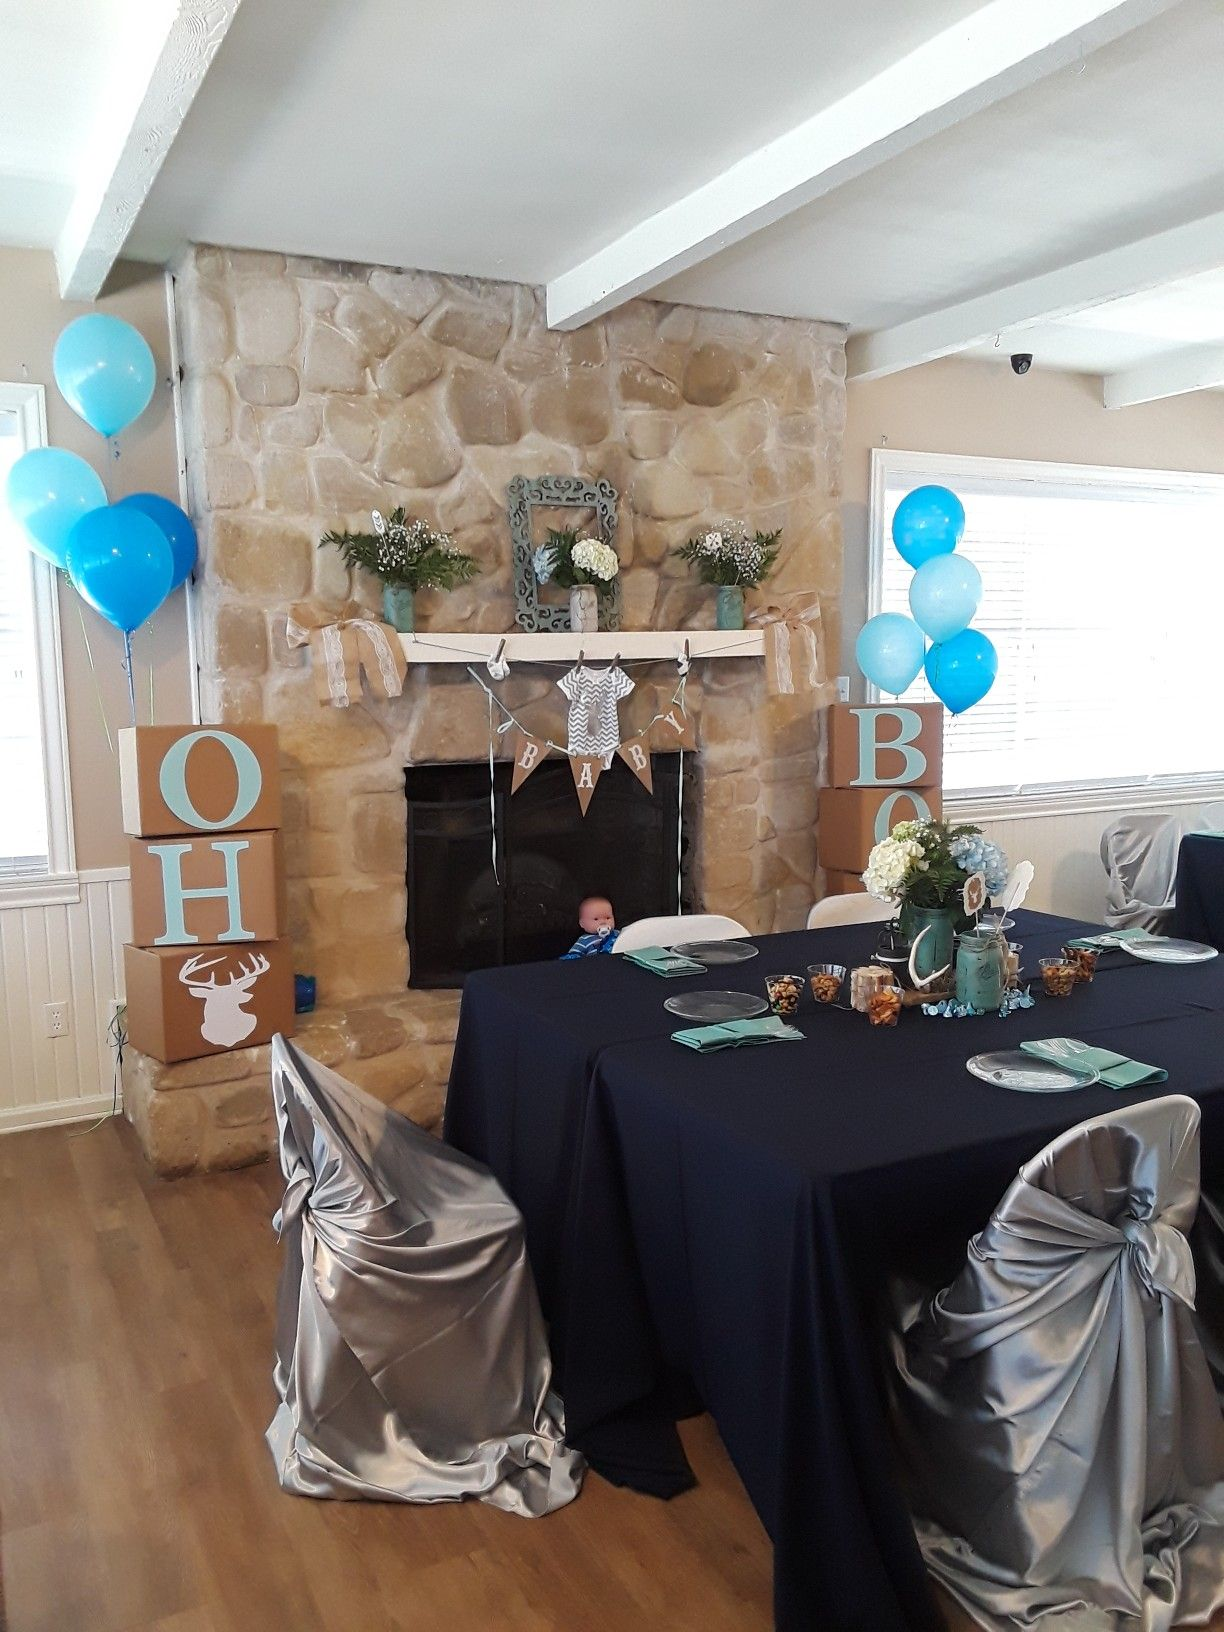 9bedabc9cba1 Oh boy baby shower oh deer rustic